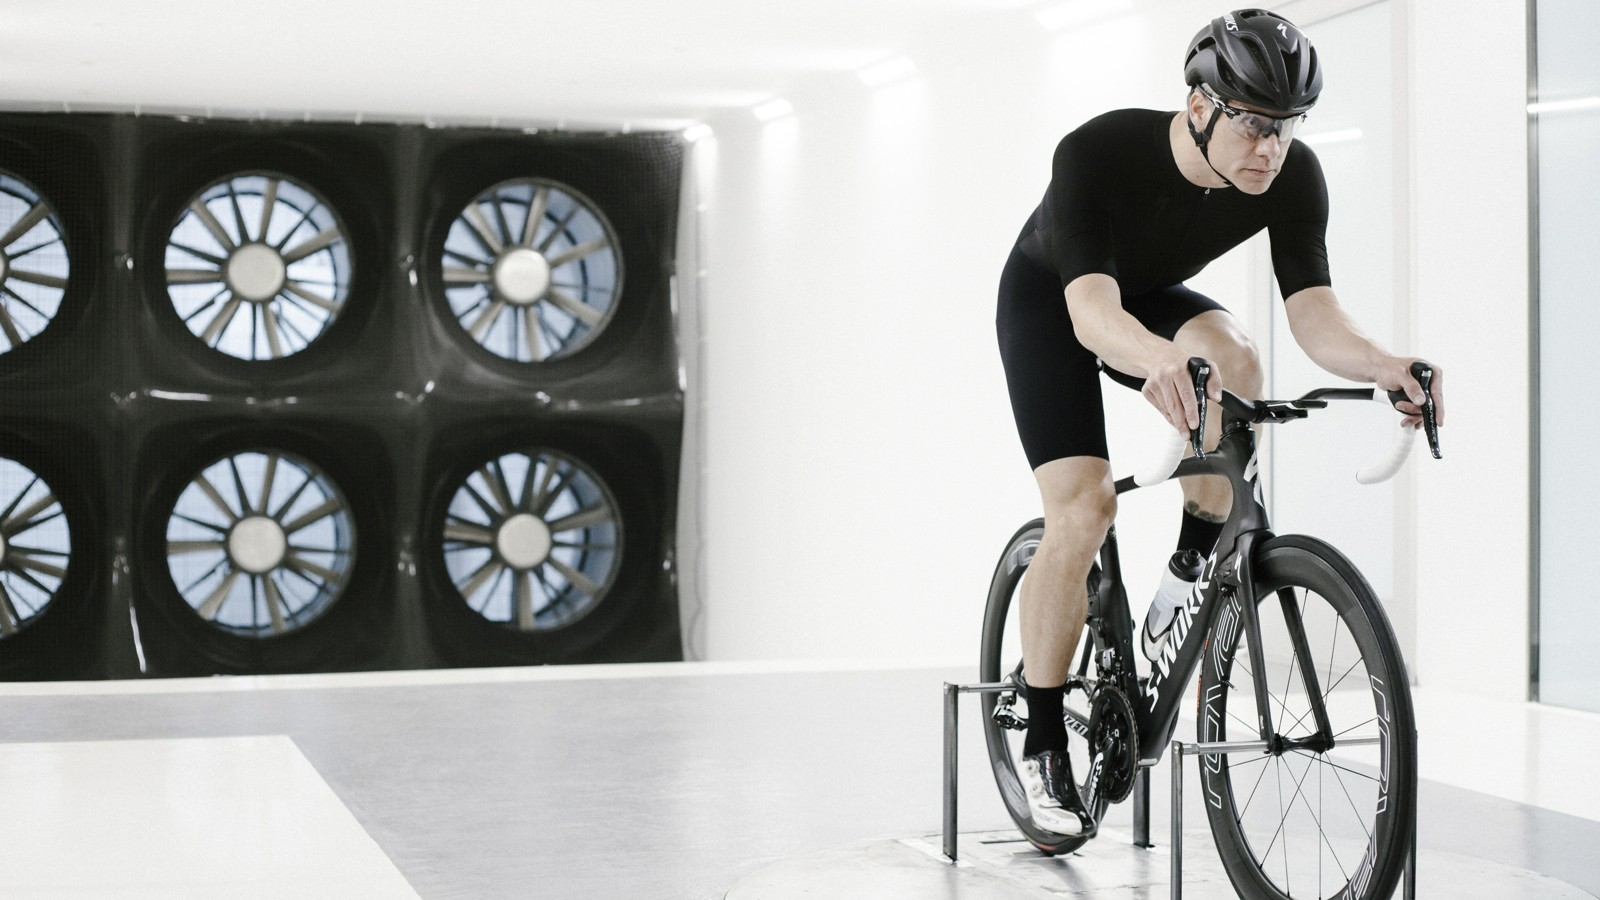 To showcase the Venge ViAS, Specialized invited a few journalists into the company's wind tunnel